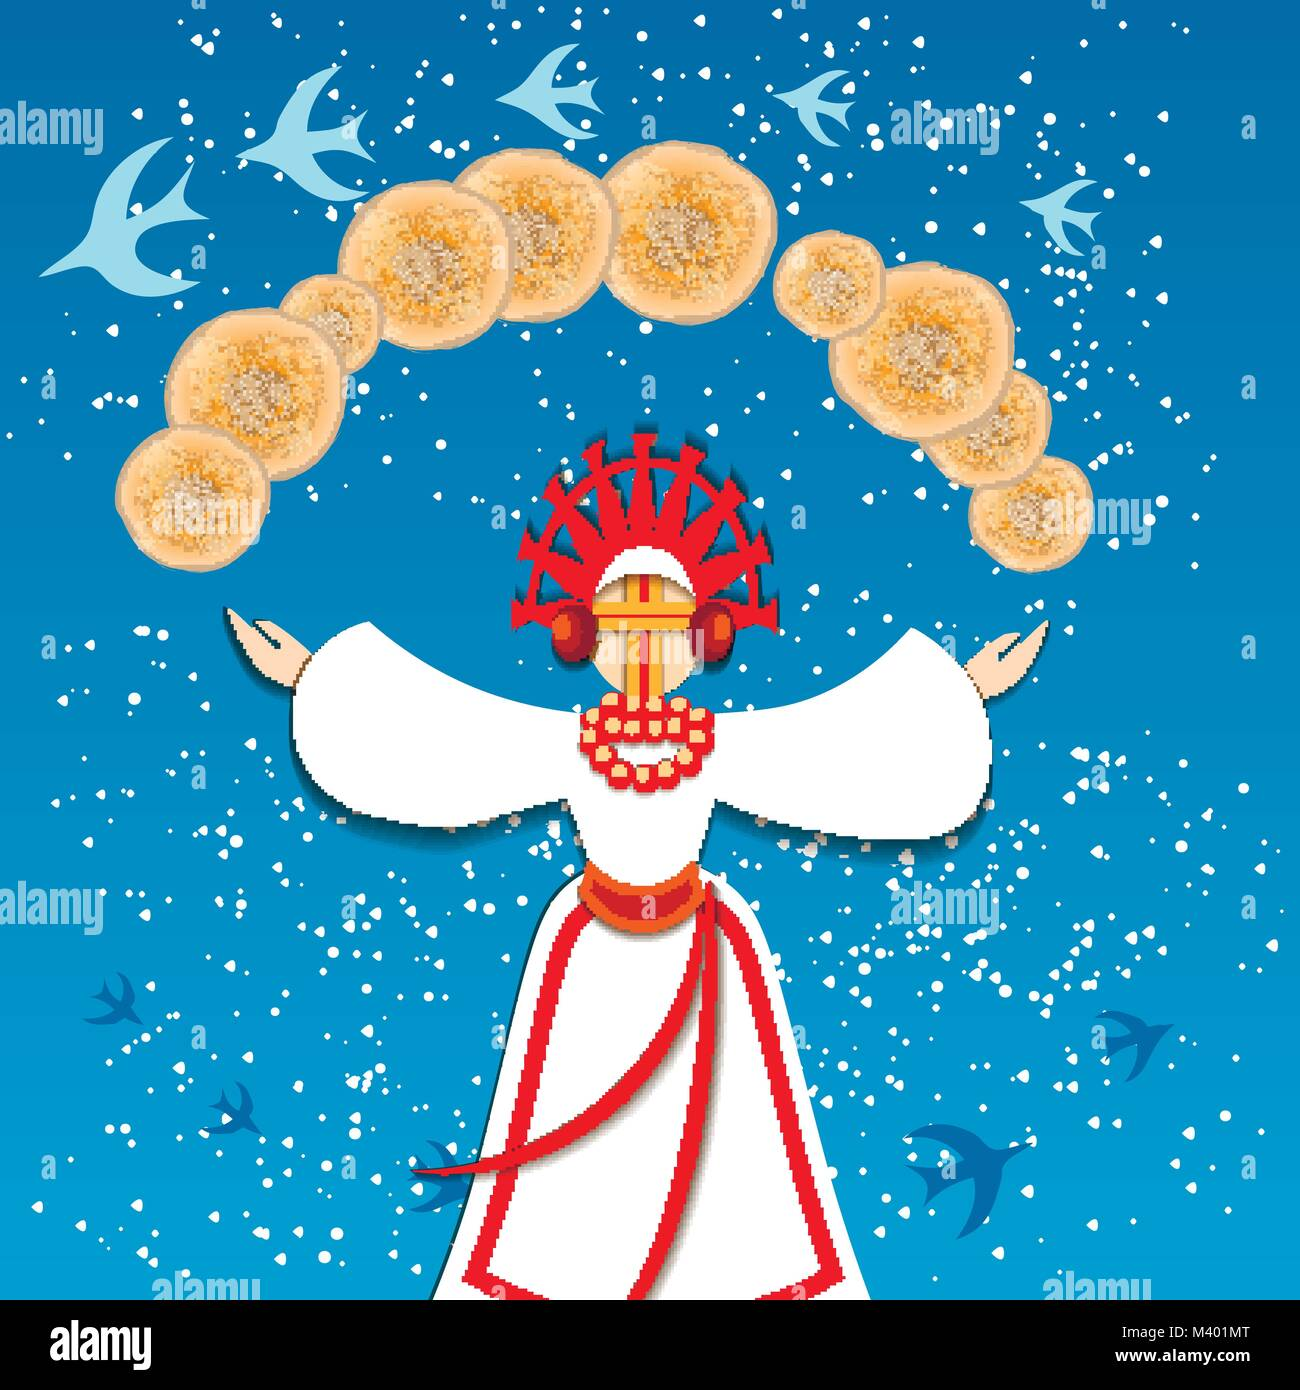 Russian traditional holiday Maslenitsa. The arrival of spring and the departure of winter. Migratory birds return. - Stock Vector